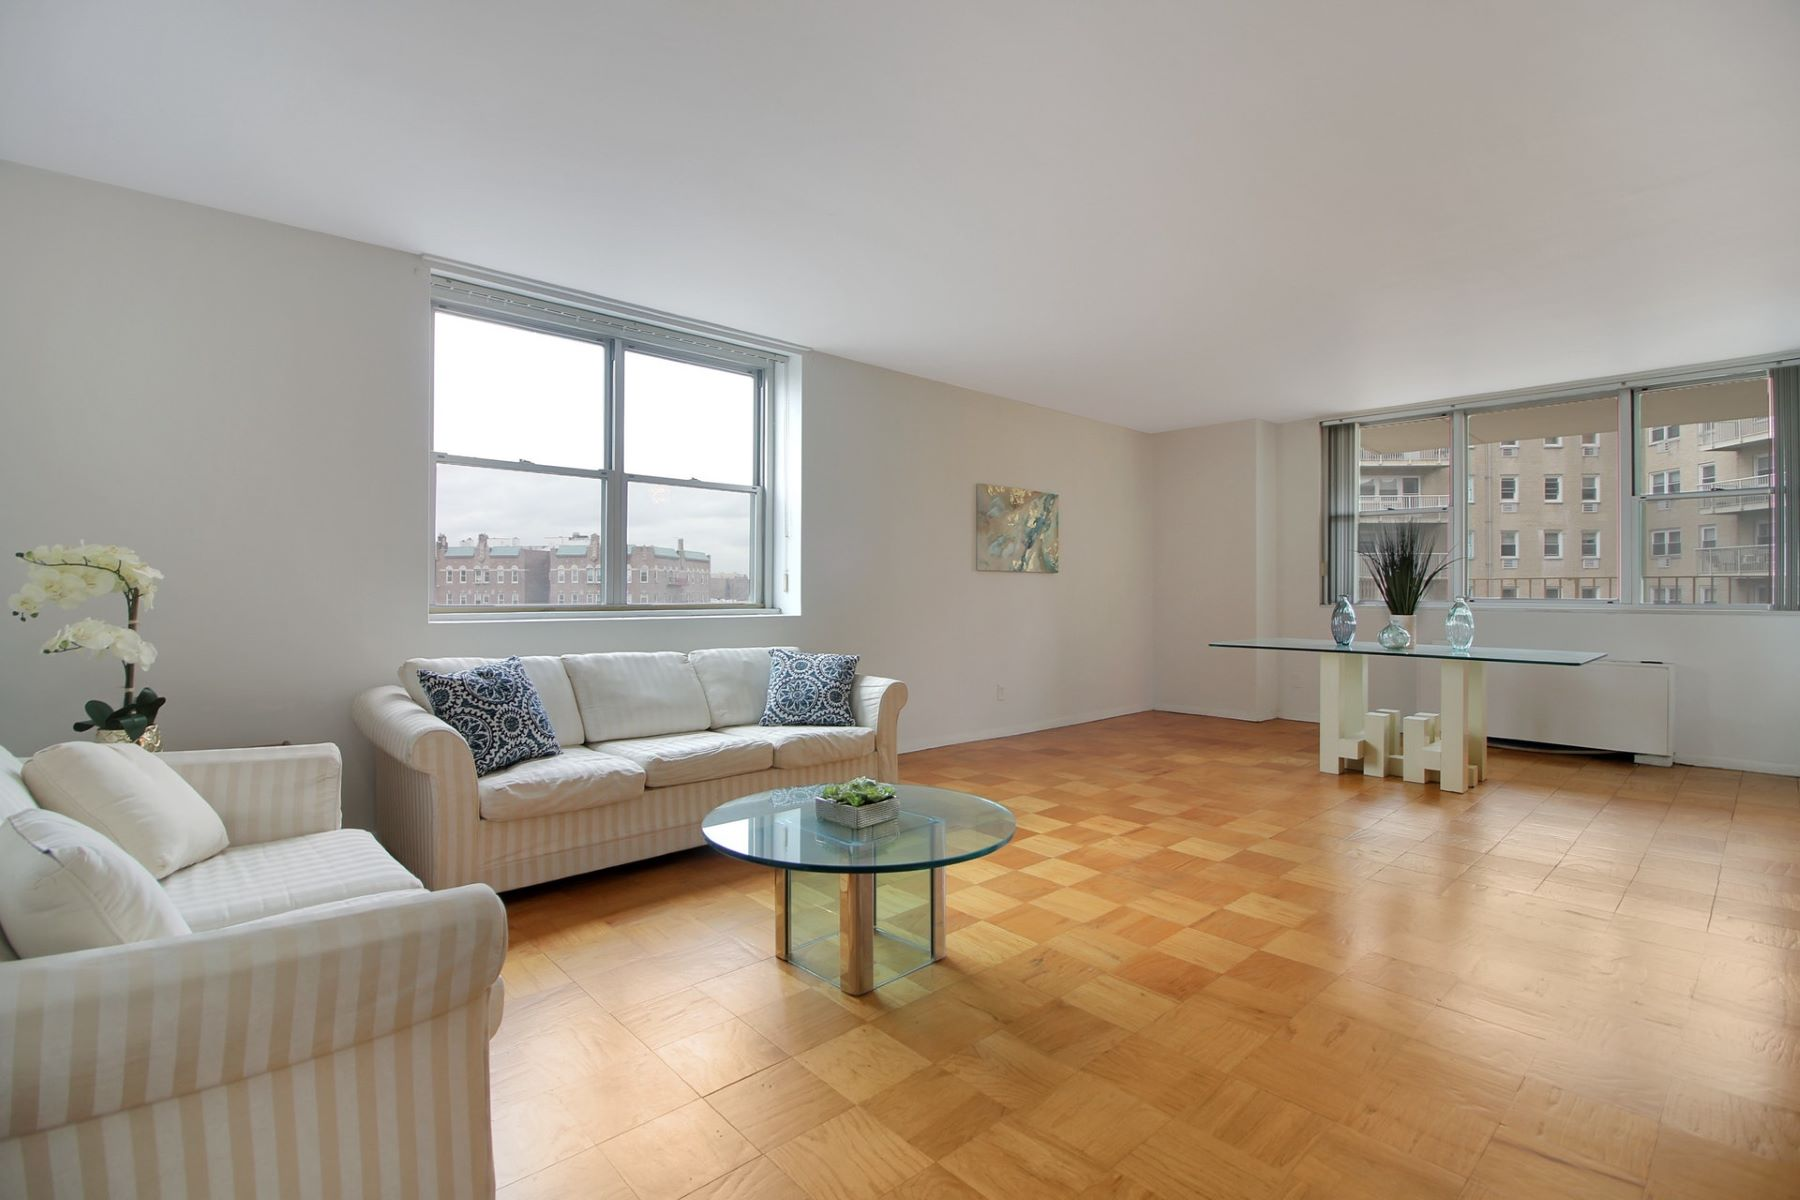 Co-op for Sale at One Bed One Bath located at the Prestigious Riviera Towers 6040 BLVD East #3H, West New York, New Jersey 07093 United States